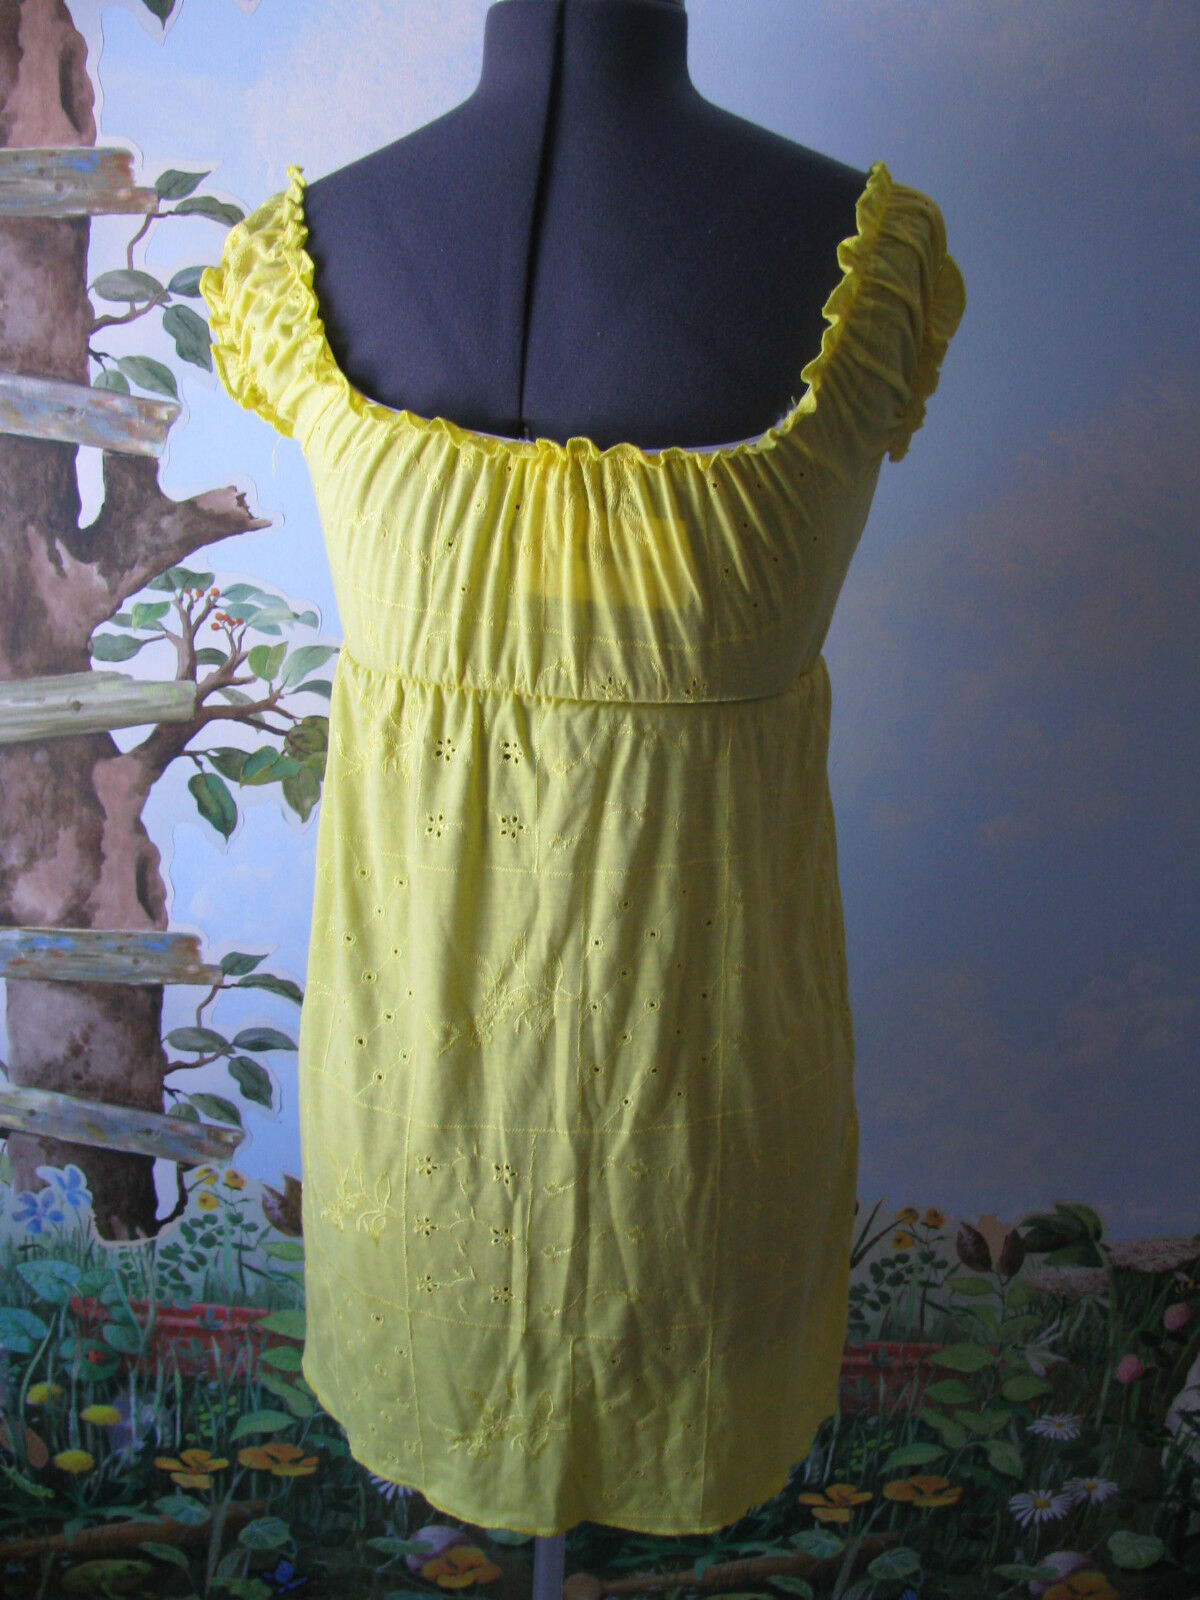 Cover Me Me Me Cover-up Yellow Women's Swimsuit Cover up Size Small 0a5cfb